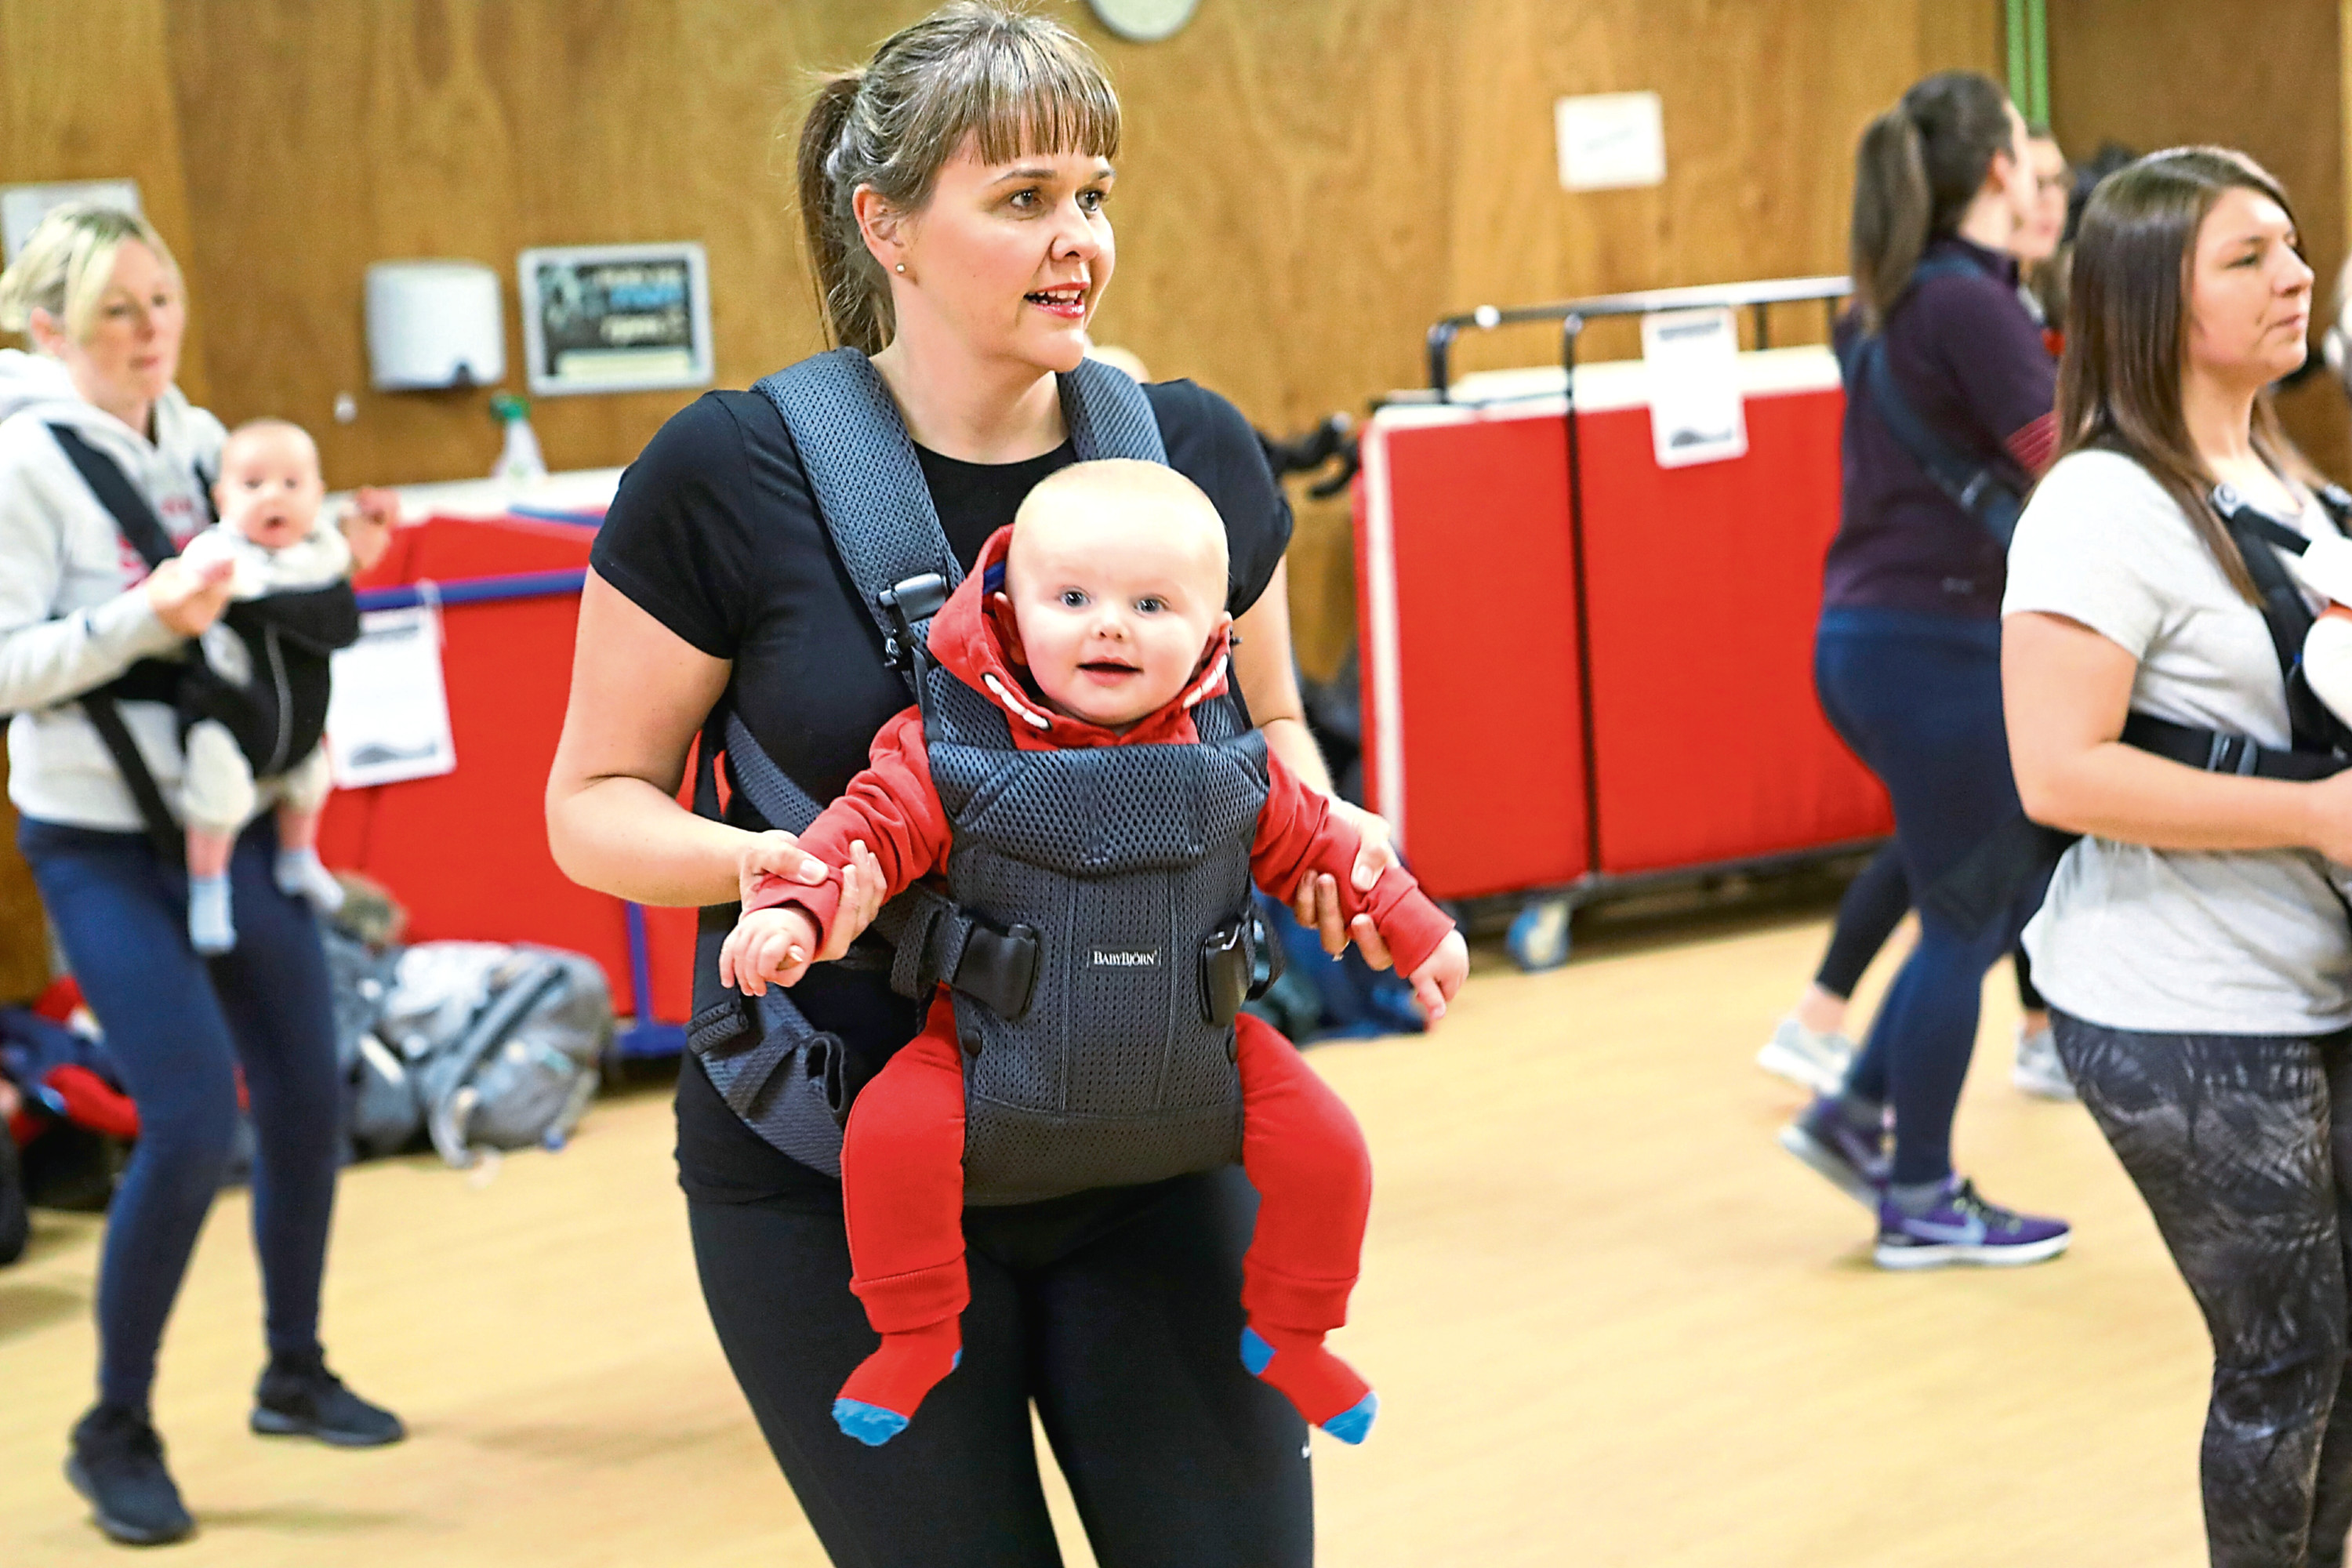 Some of the mums with their babies at the Boogie Babies class.